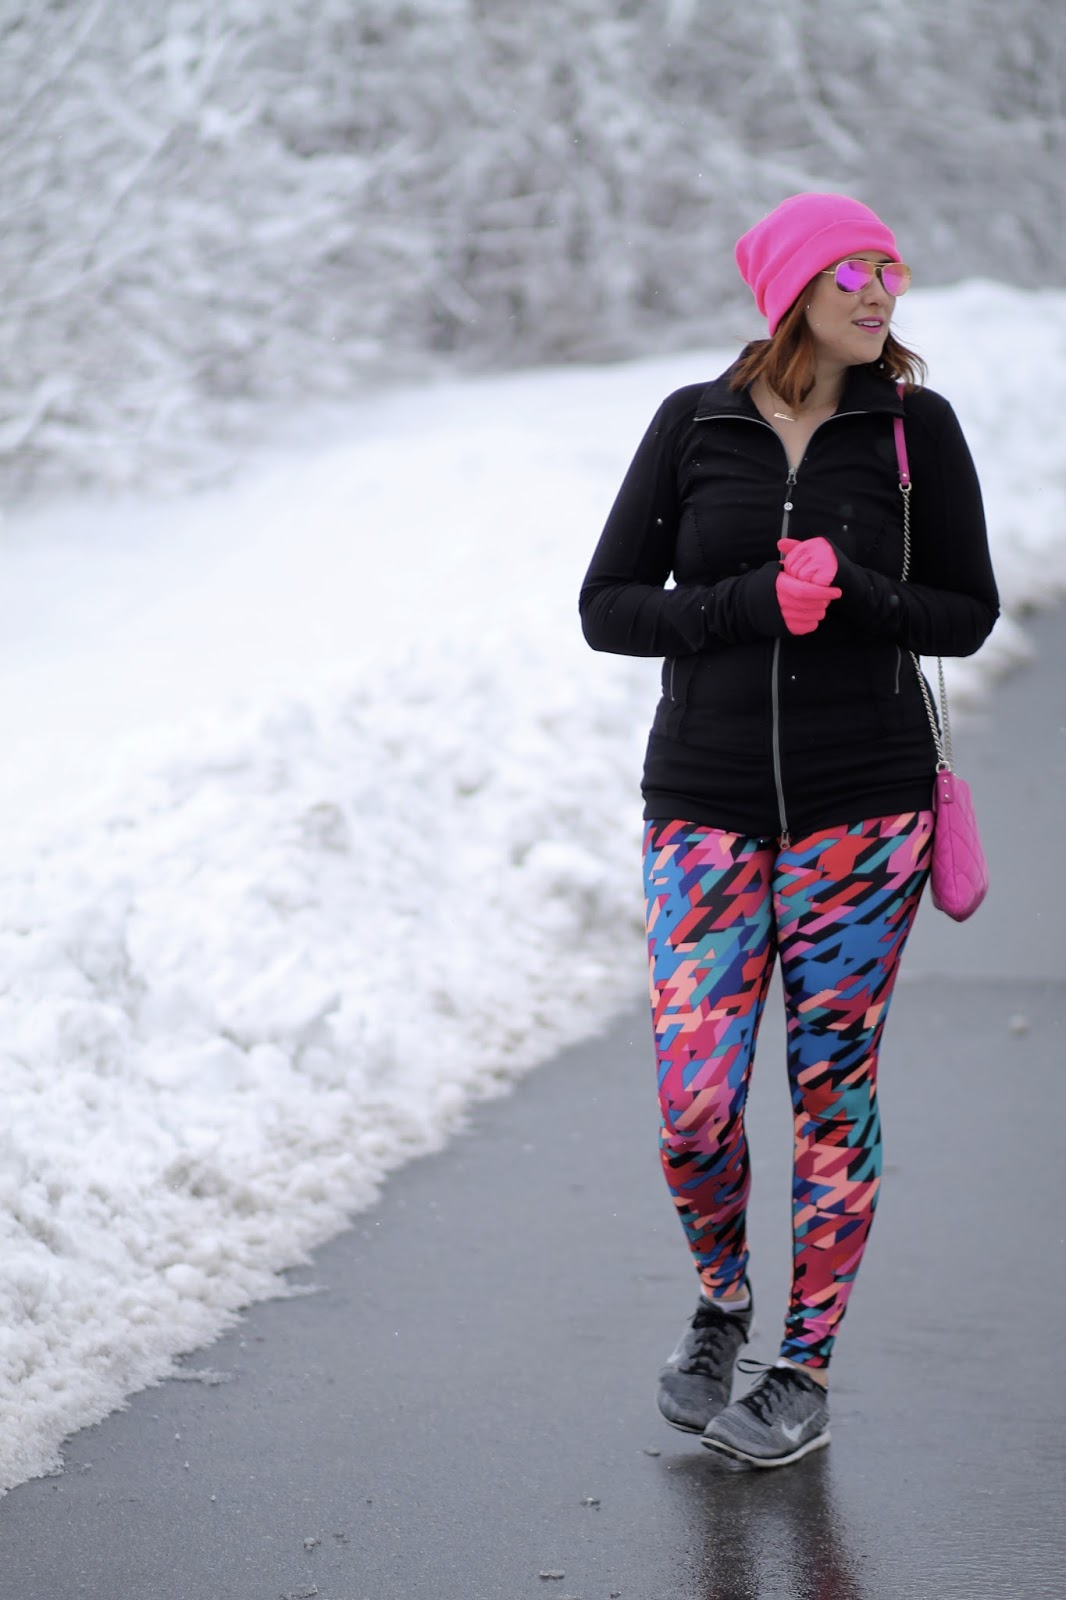 Nordstrom workout leggings from zella in fun patterns and prints, kate spade pink bag, purse, pink raybans, and nike flyknit free